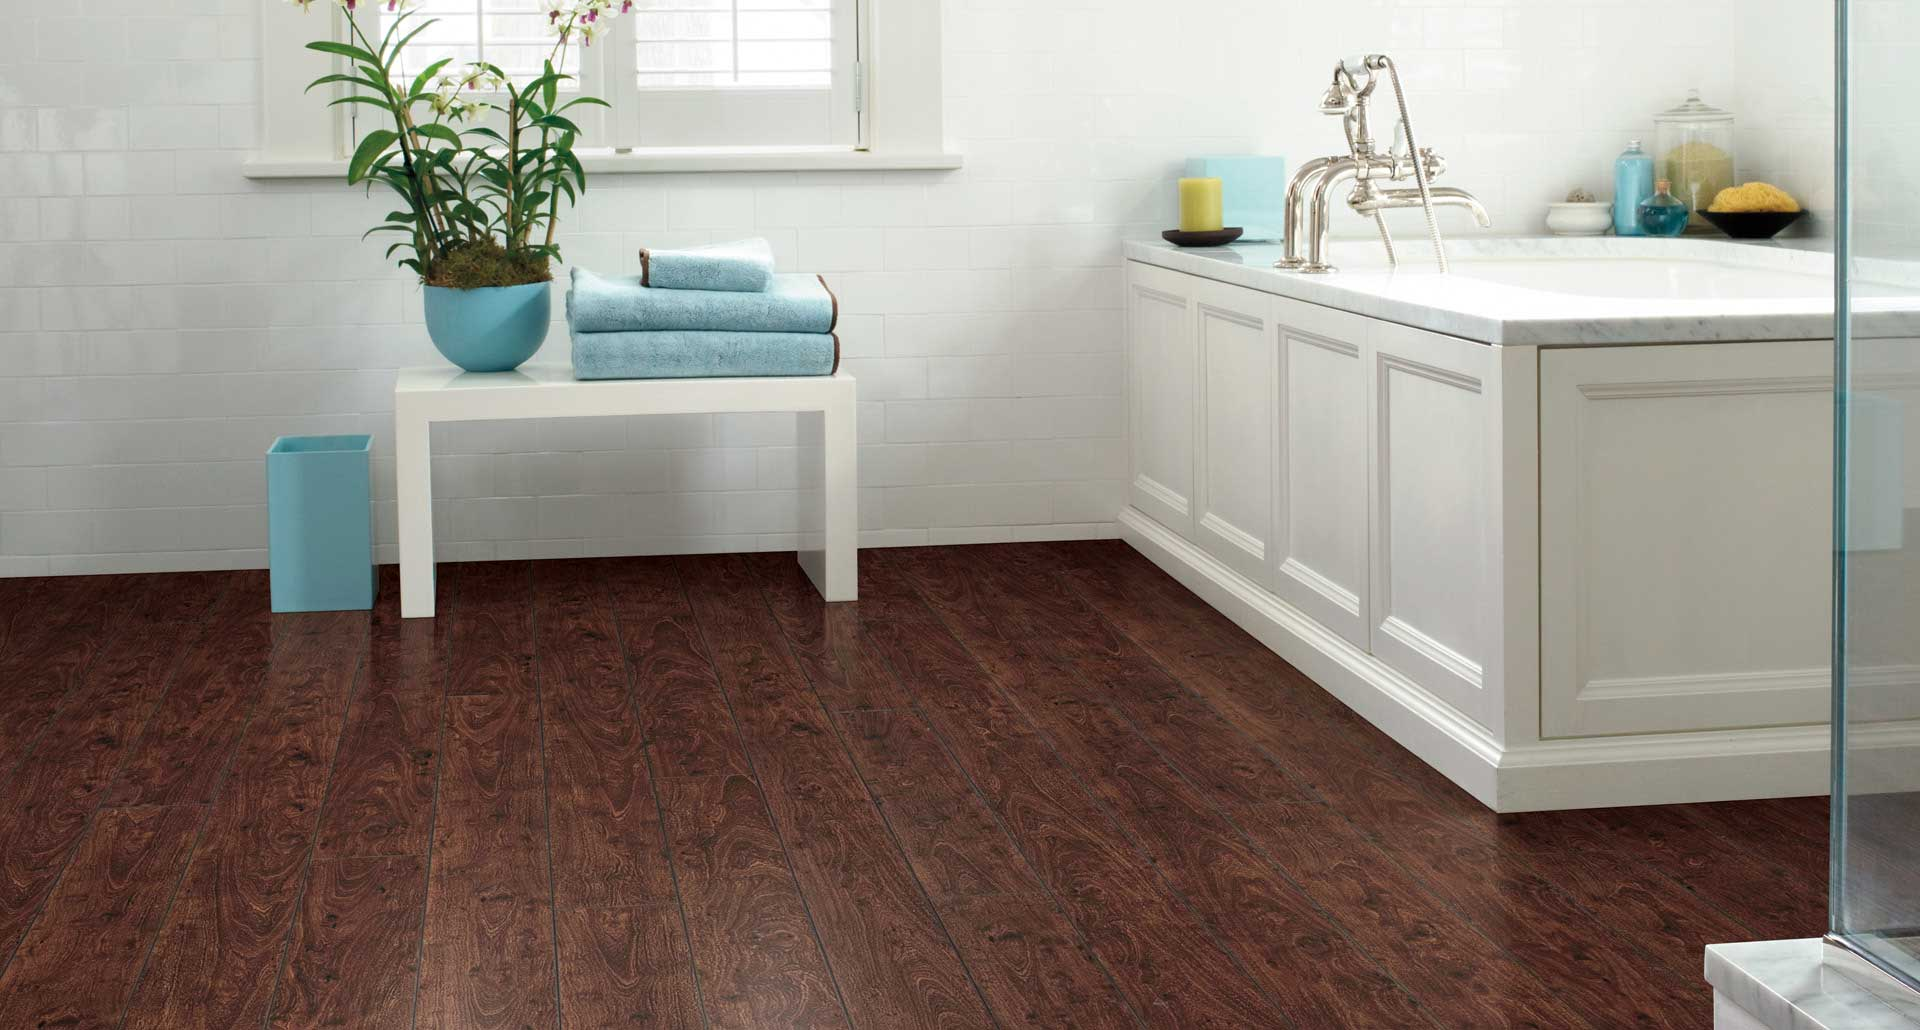 mesquite_laminate-bathroom-flooring-pergo